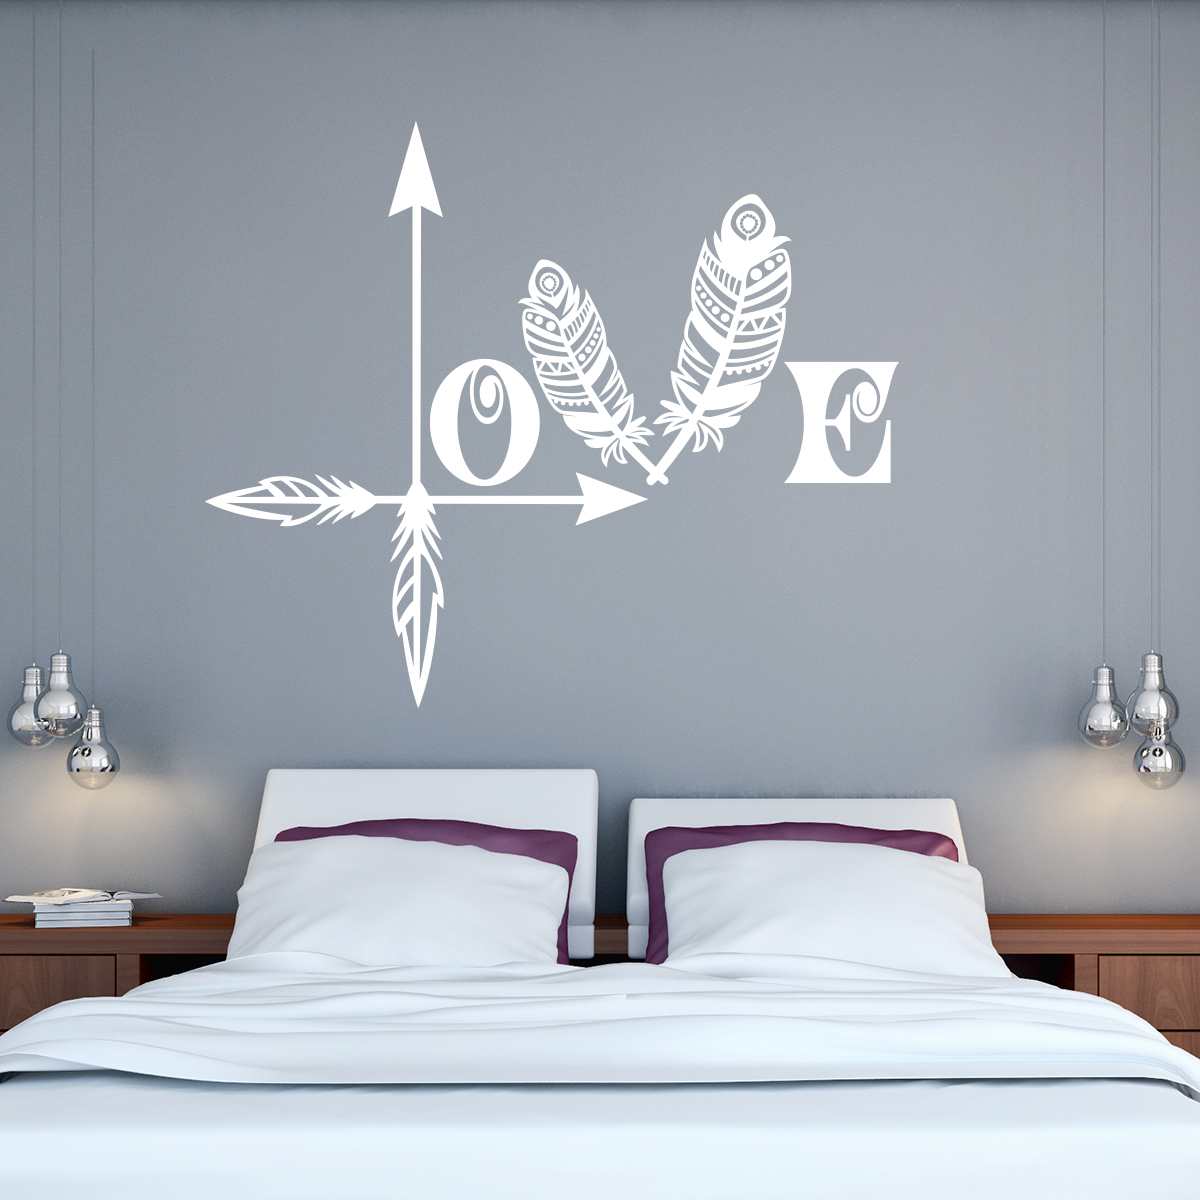 dessin pour tete de lit sticker citation love et plumes with dessin pour tete de lit top. Black Bedroom Furniture Sets. Home Design Ideas